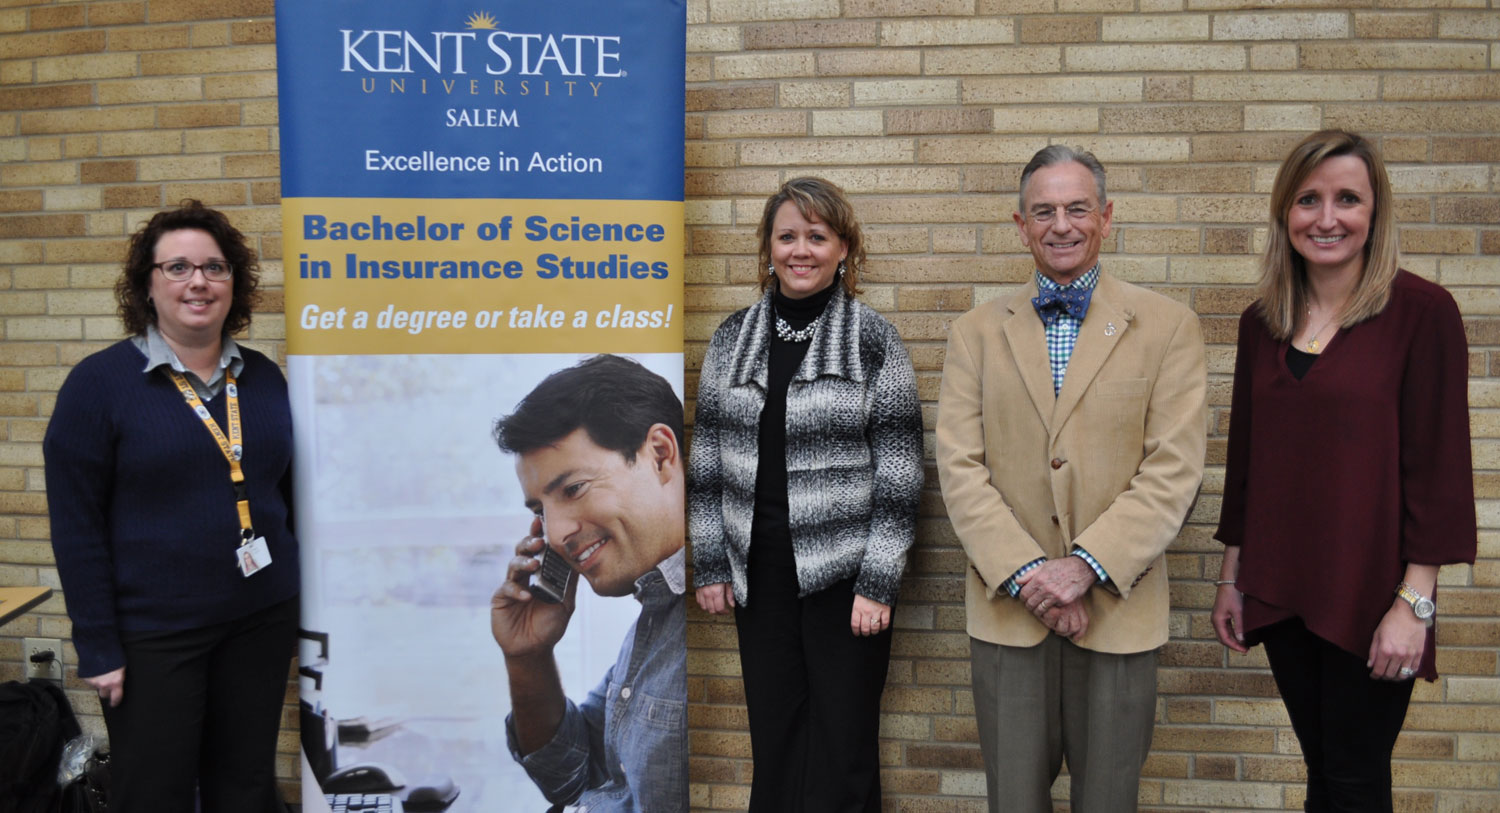 Sharing information about the Insurance Studies program and working in the insurance industry were (from left) Jennifer Buck, Andi Starkey, Dr. Steve Nameth and Janie Geis.